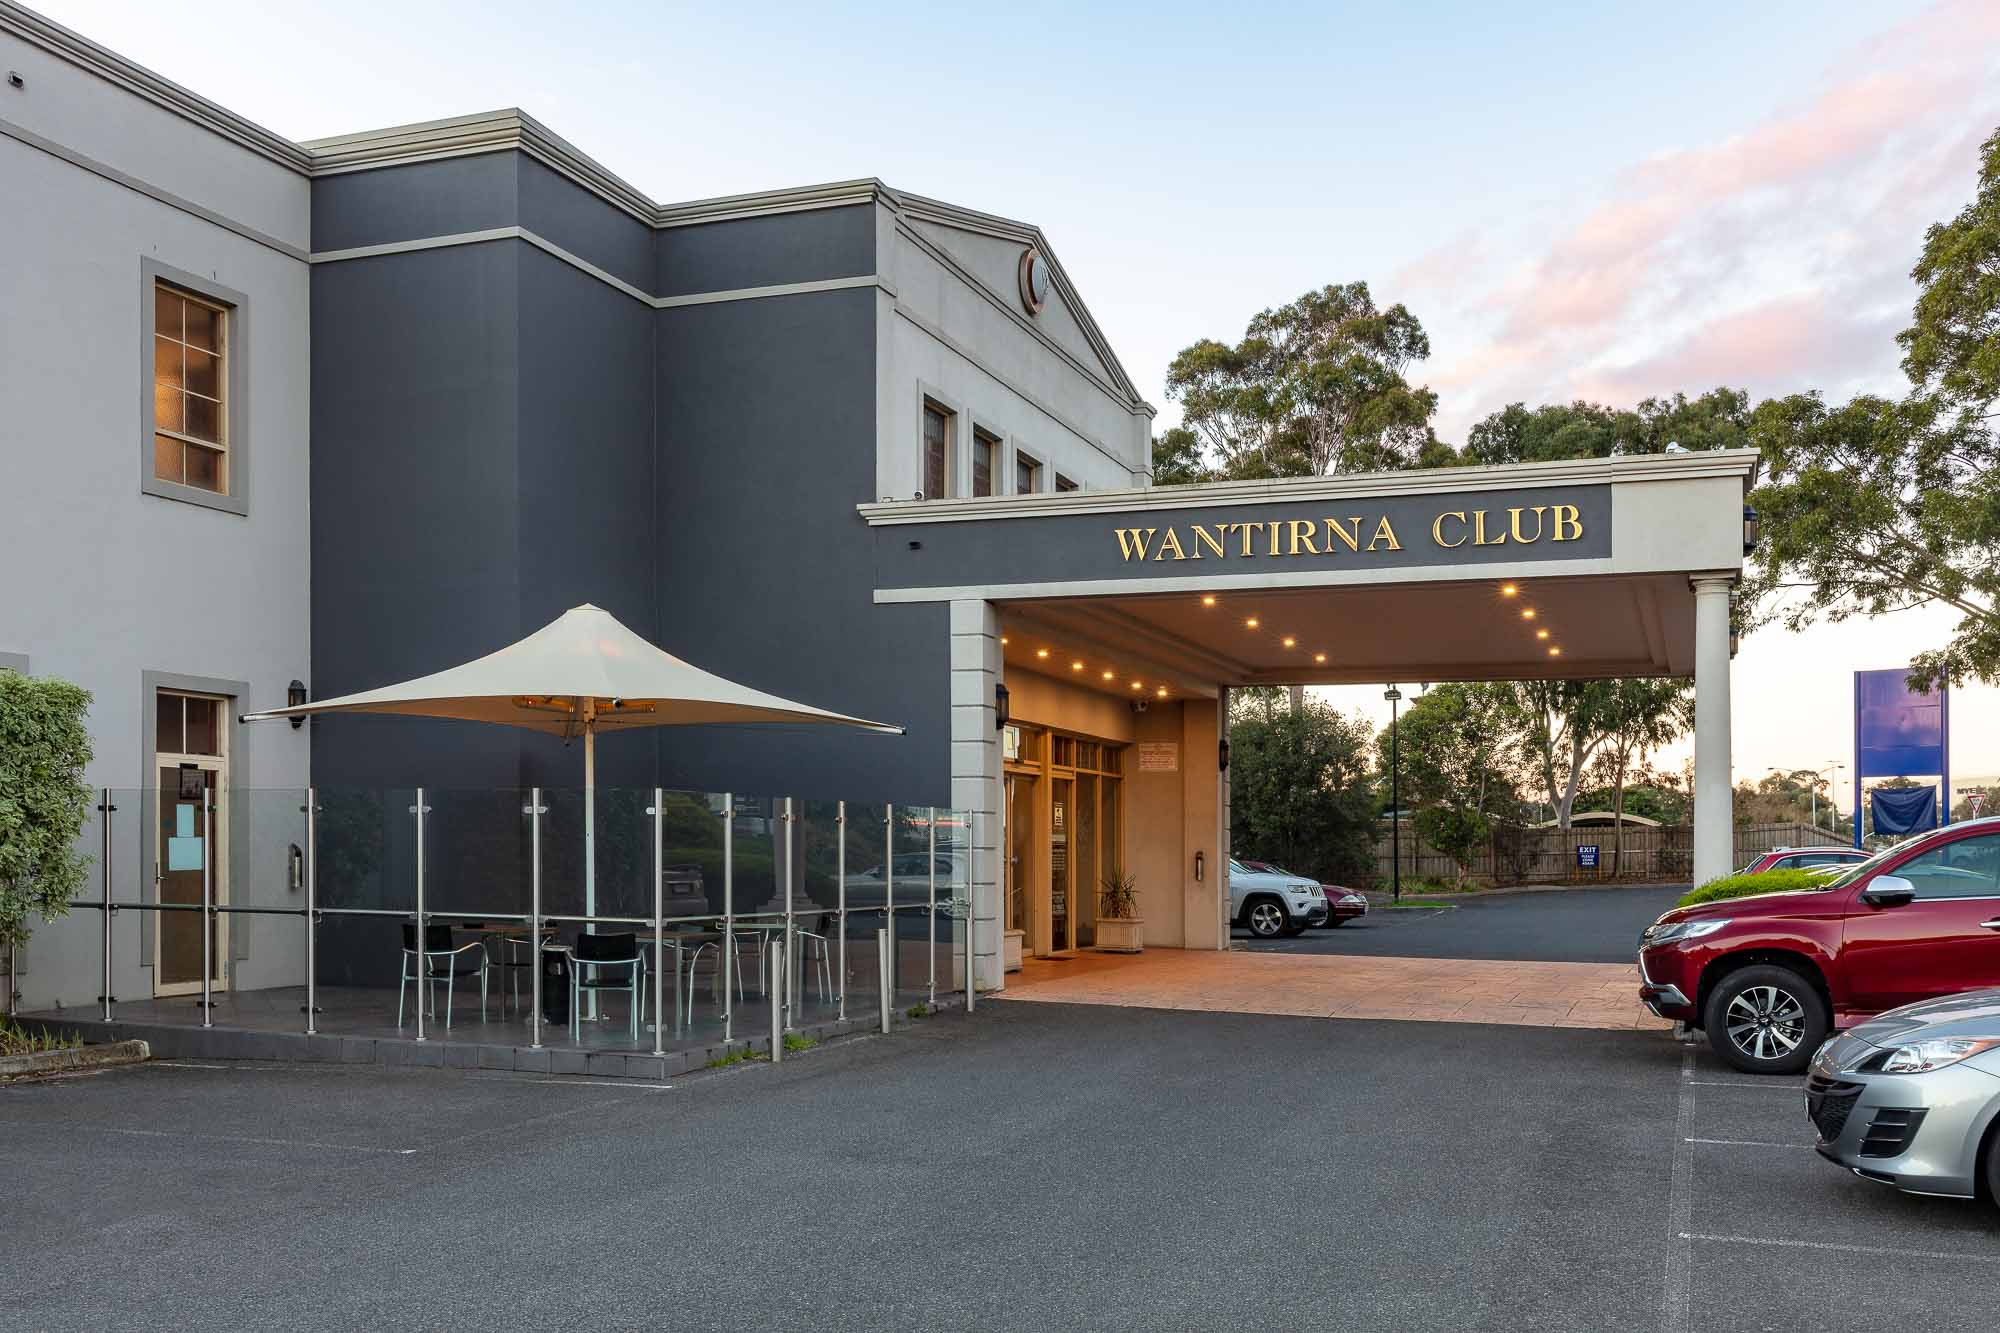 Commercial photography sample - Wantirna Club front of building left side closer